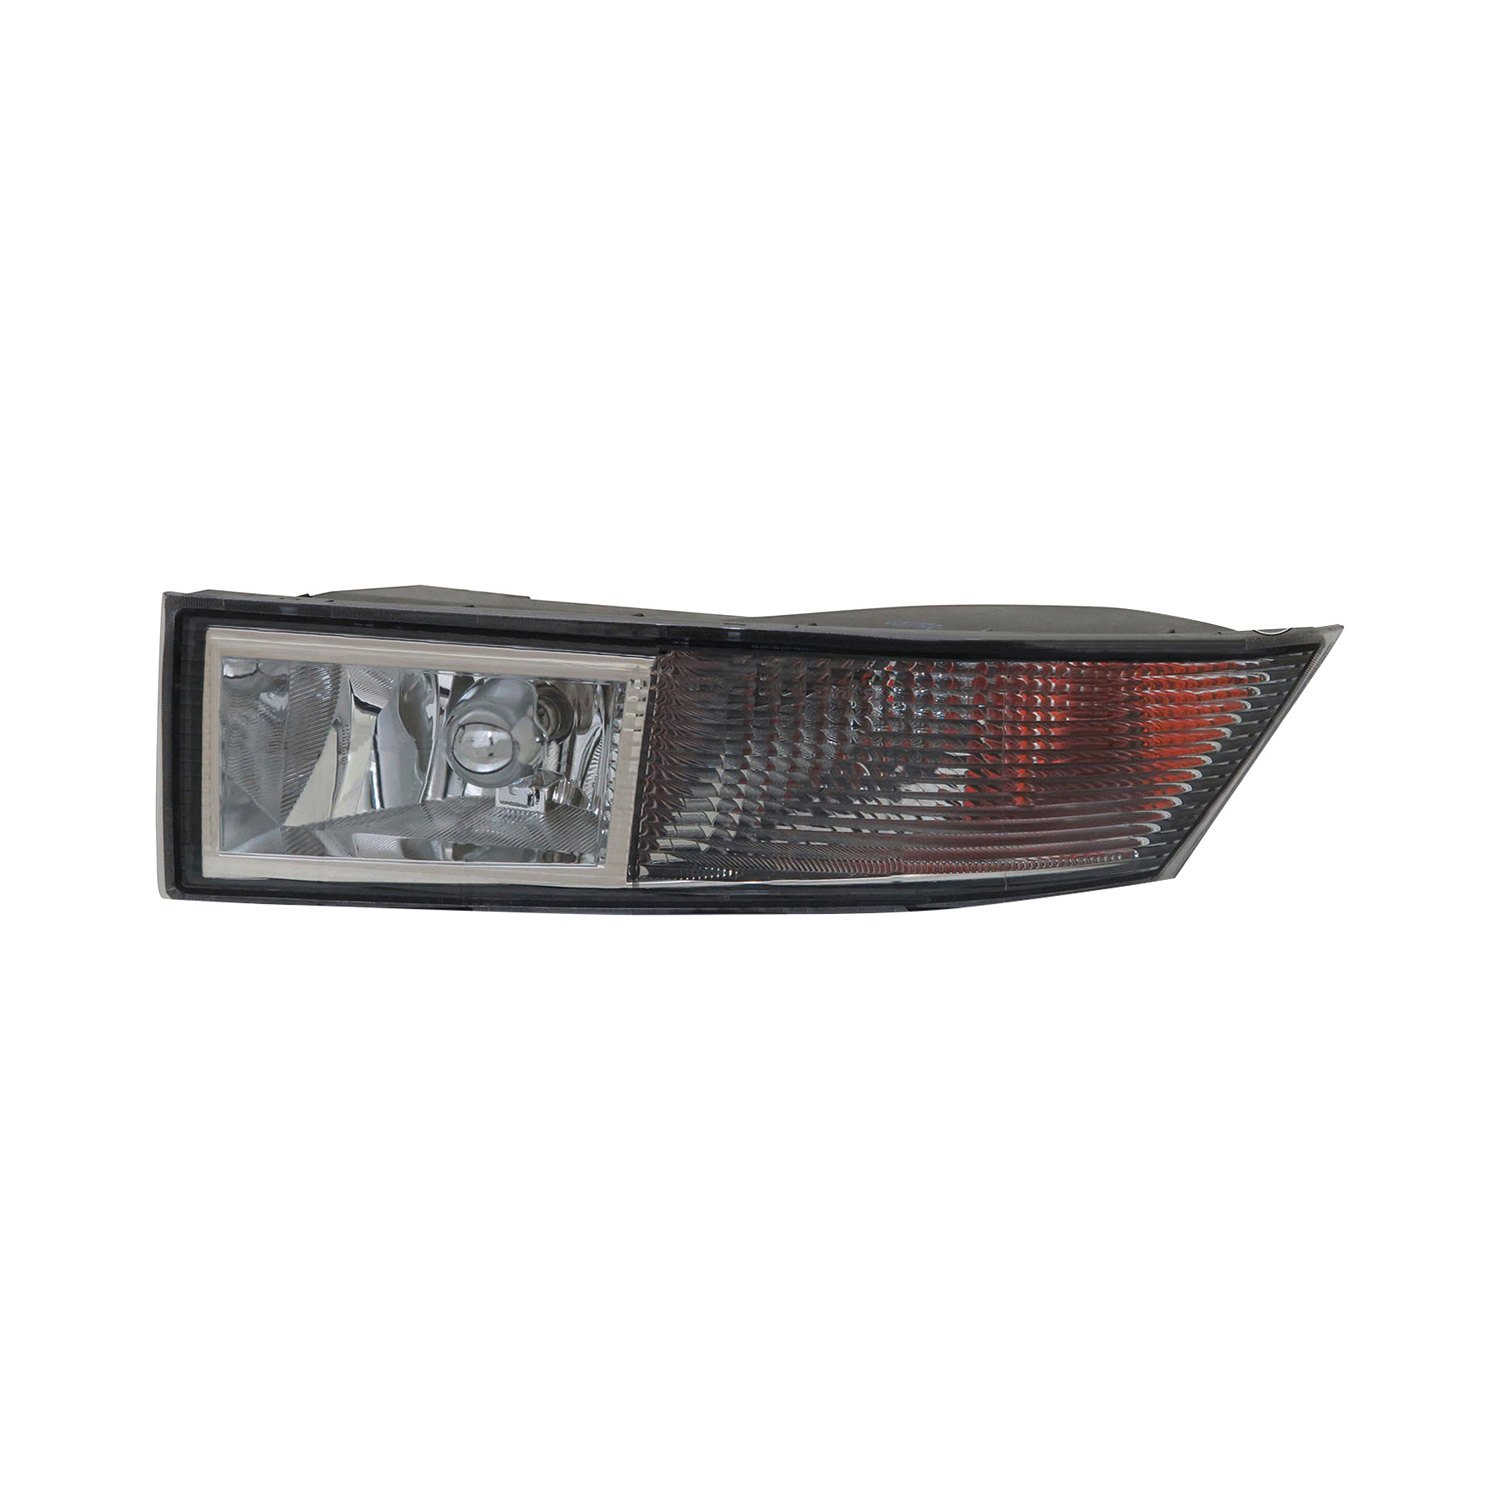 tyc cadillac escalade 2008 replacement fog light. Black Bedroom Furniture Sets. Home Design Ideas